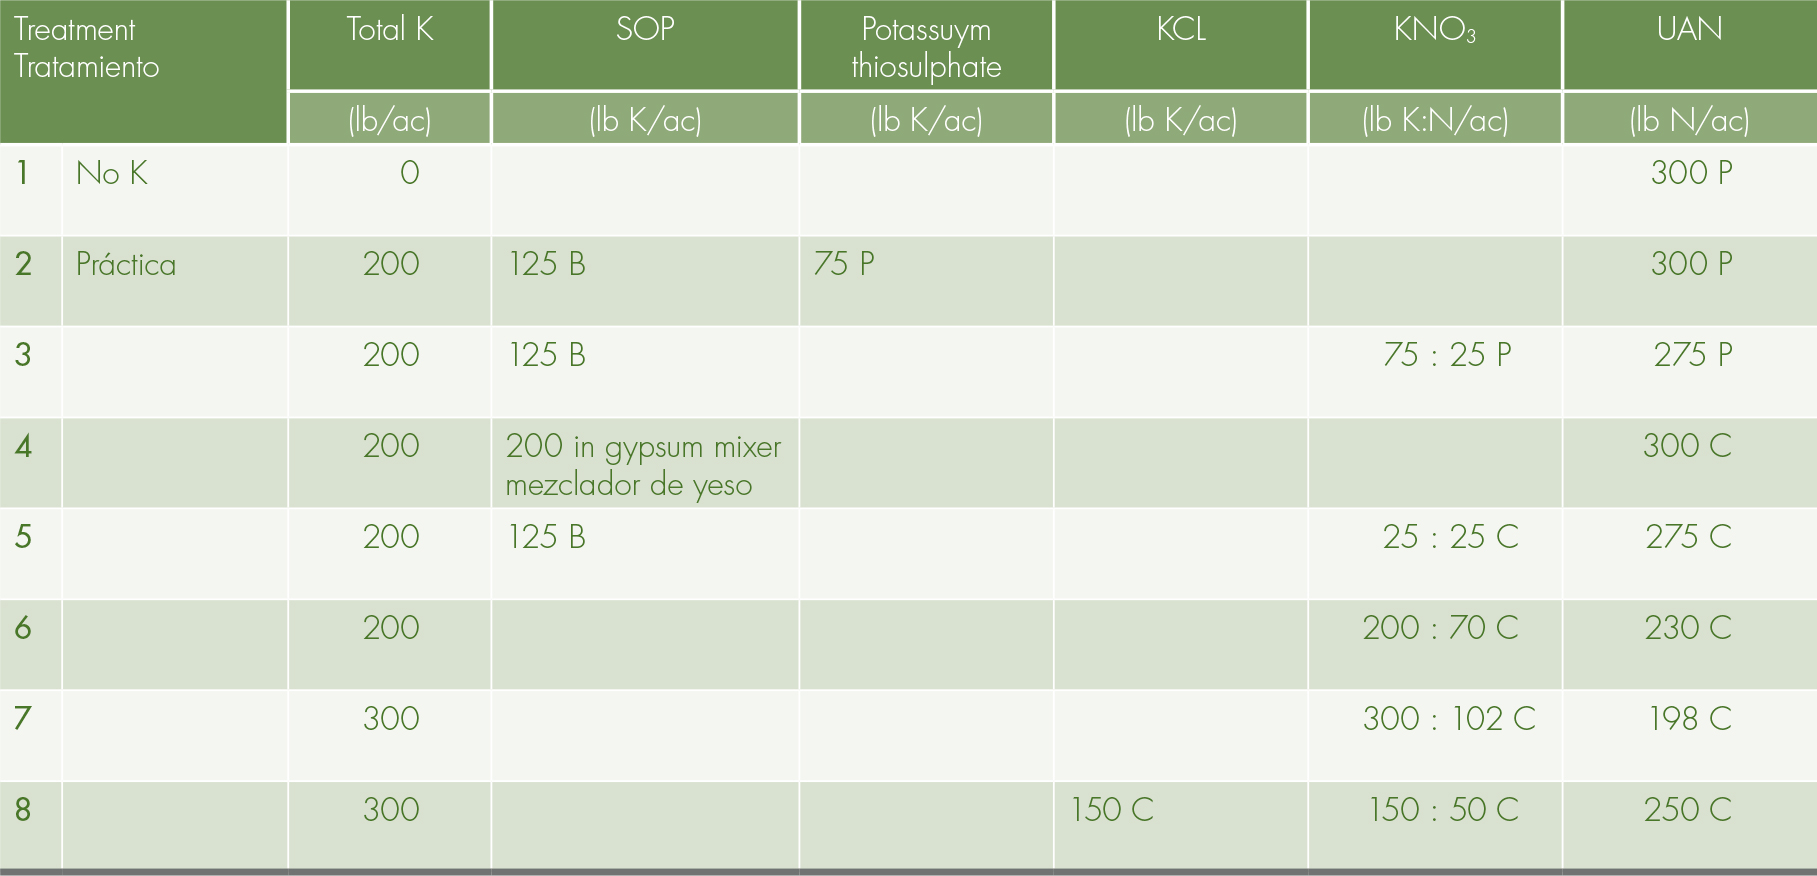 Potassium (K) and Nitrogen (N) supplied in the eight treatments during the trial period. All plots received 300 lb N/ac total (UAN or UAN+KN). Trt 2 represents the farmer's practice. B: Banded in February. C: Continuous fertigation: 22 fertigation events. P: Pulse fertigation: 4 dedicated fertigation events 20% in Feb, 30% in April, 30% in June and 20% early post-harvest (Aug/Sept). Multiply by 1,12 to derive the metric rates